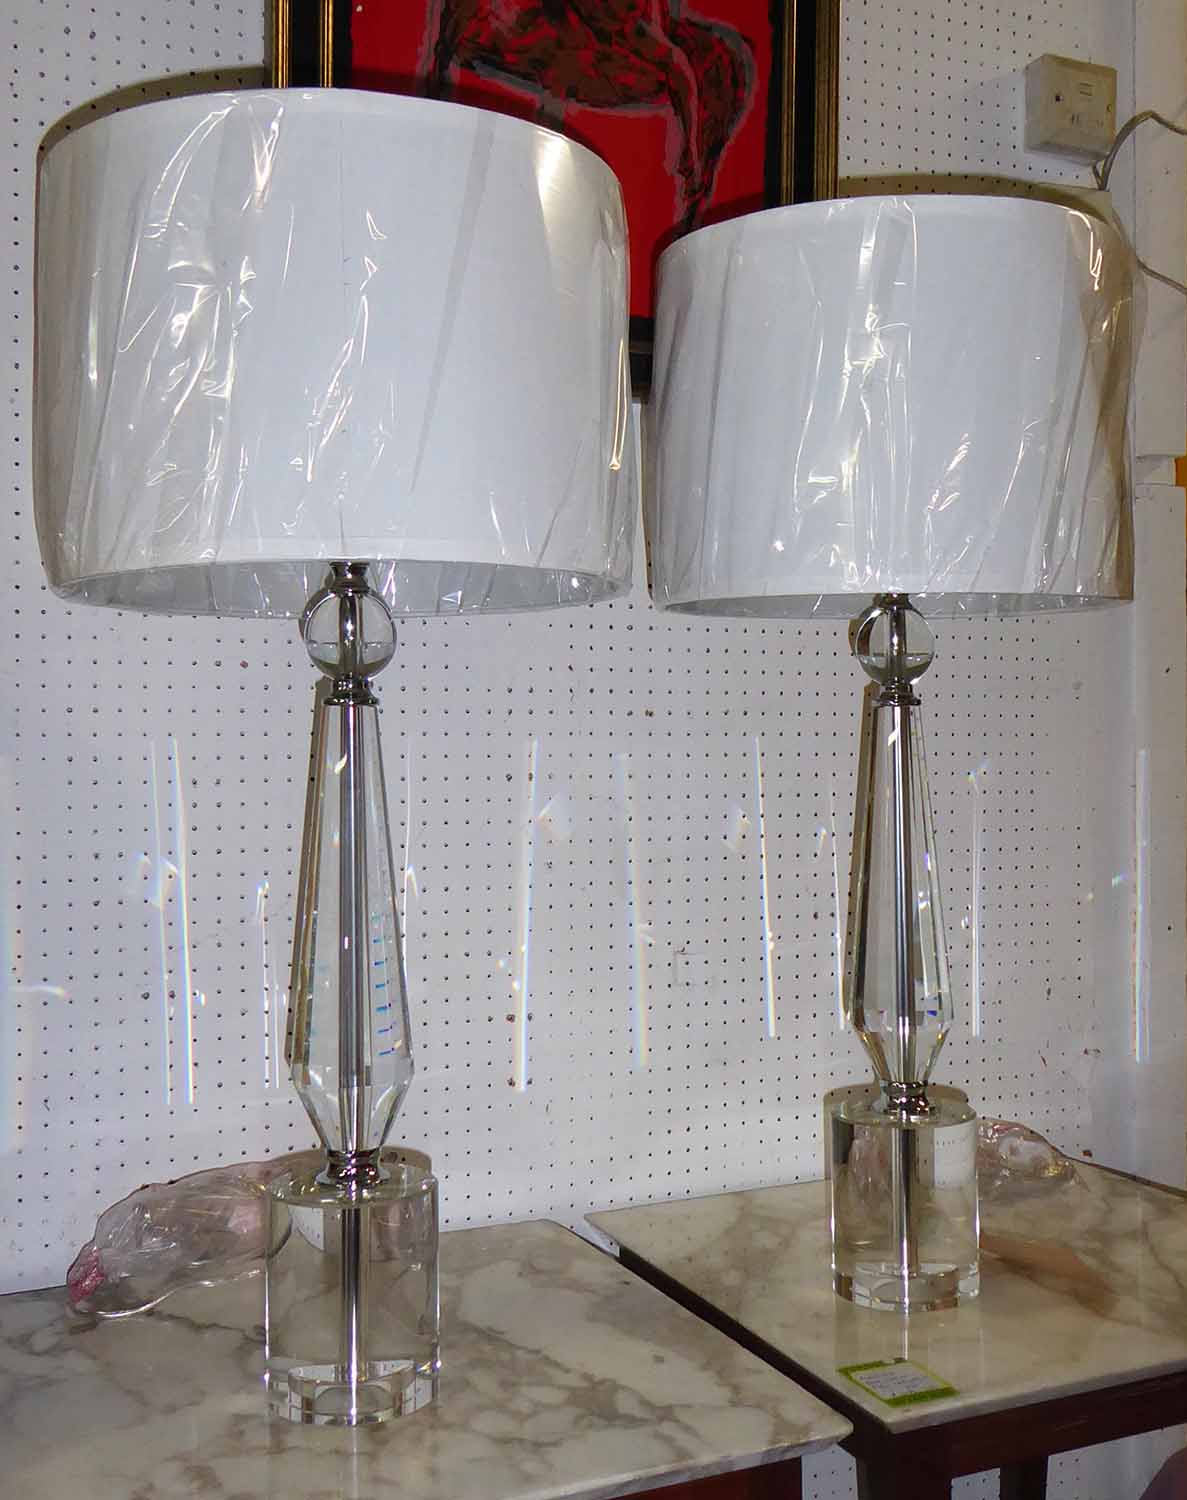 Lot 52 - TABLE LAMPS, a pair, 1950's French inspired crystal with shades, 76cm H.